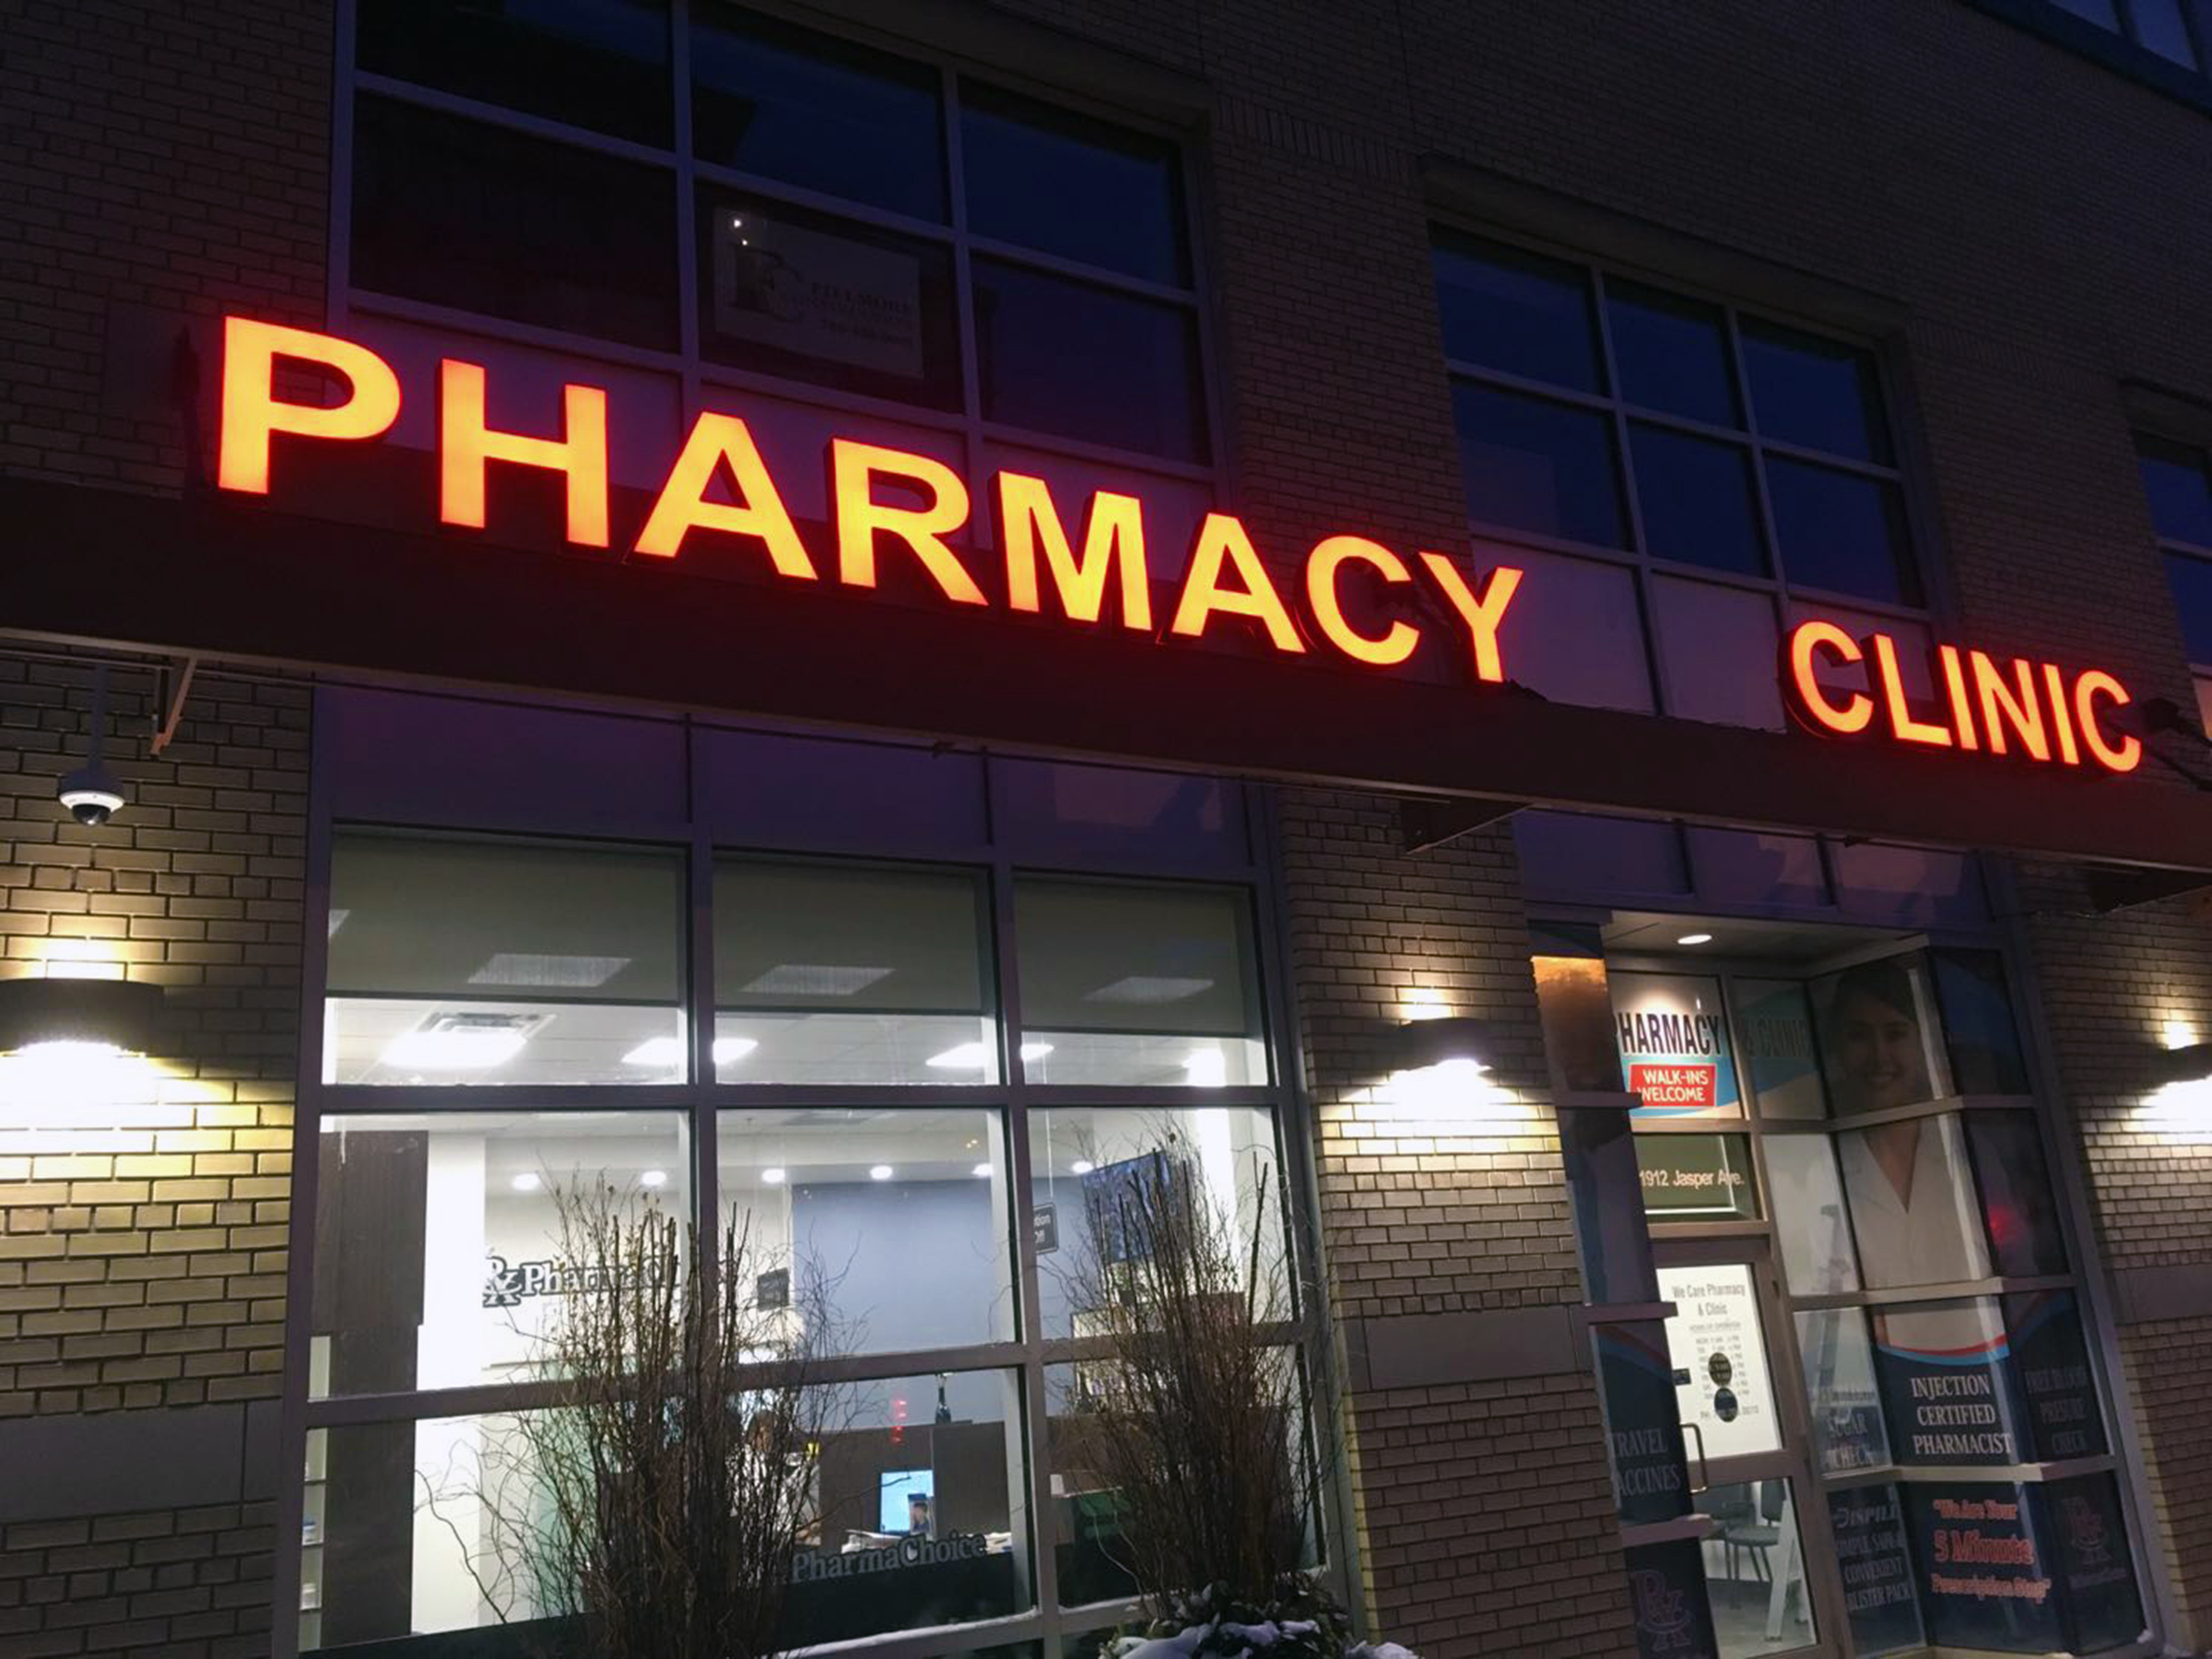 Channel Letters - Pharmacy Clinic by LED Pros